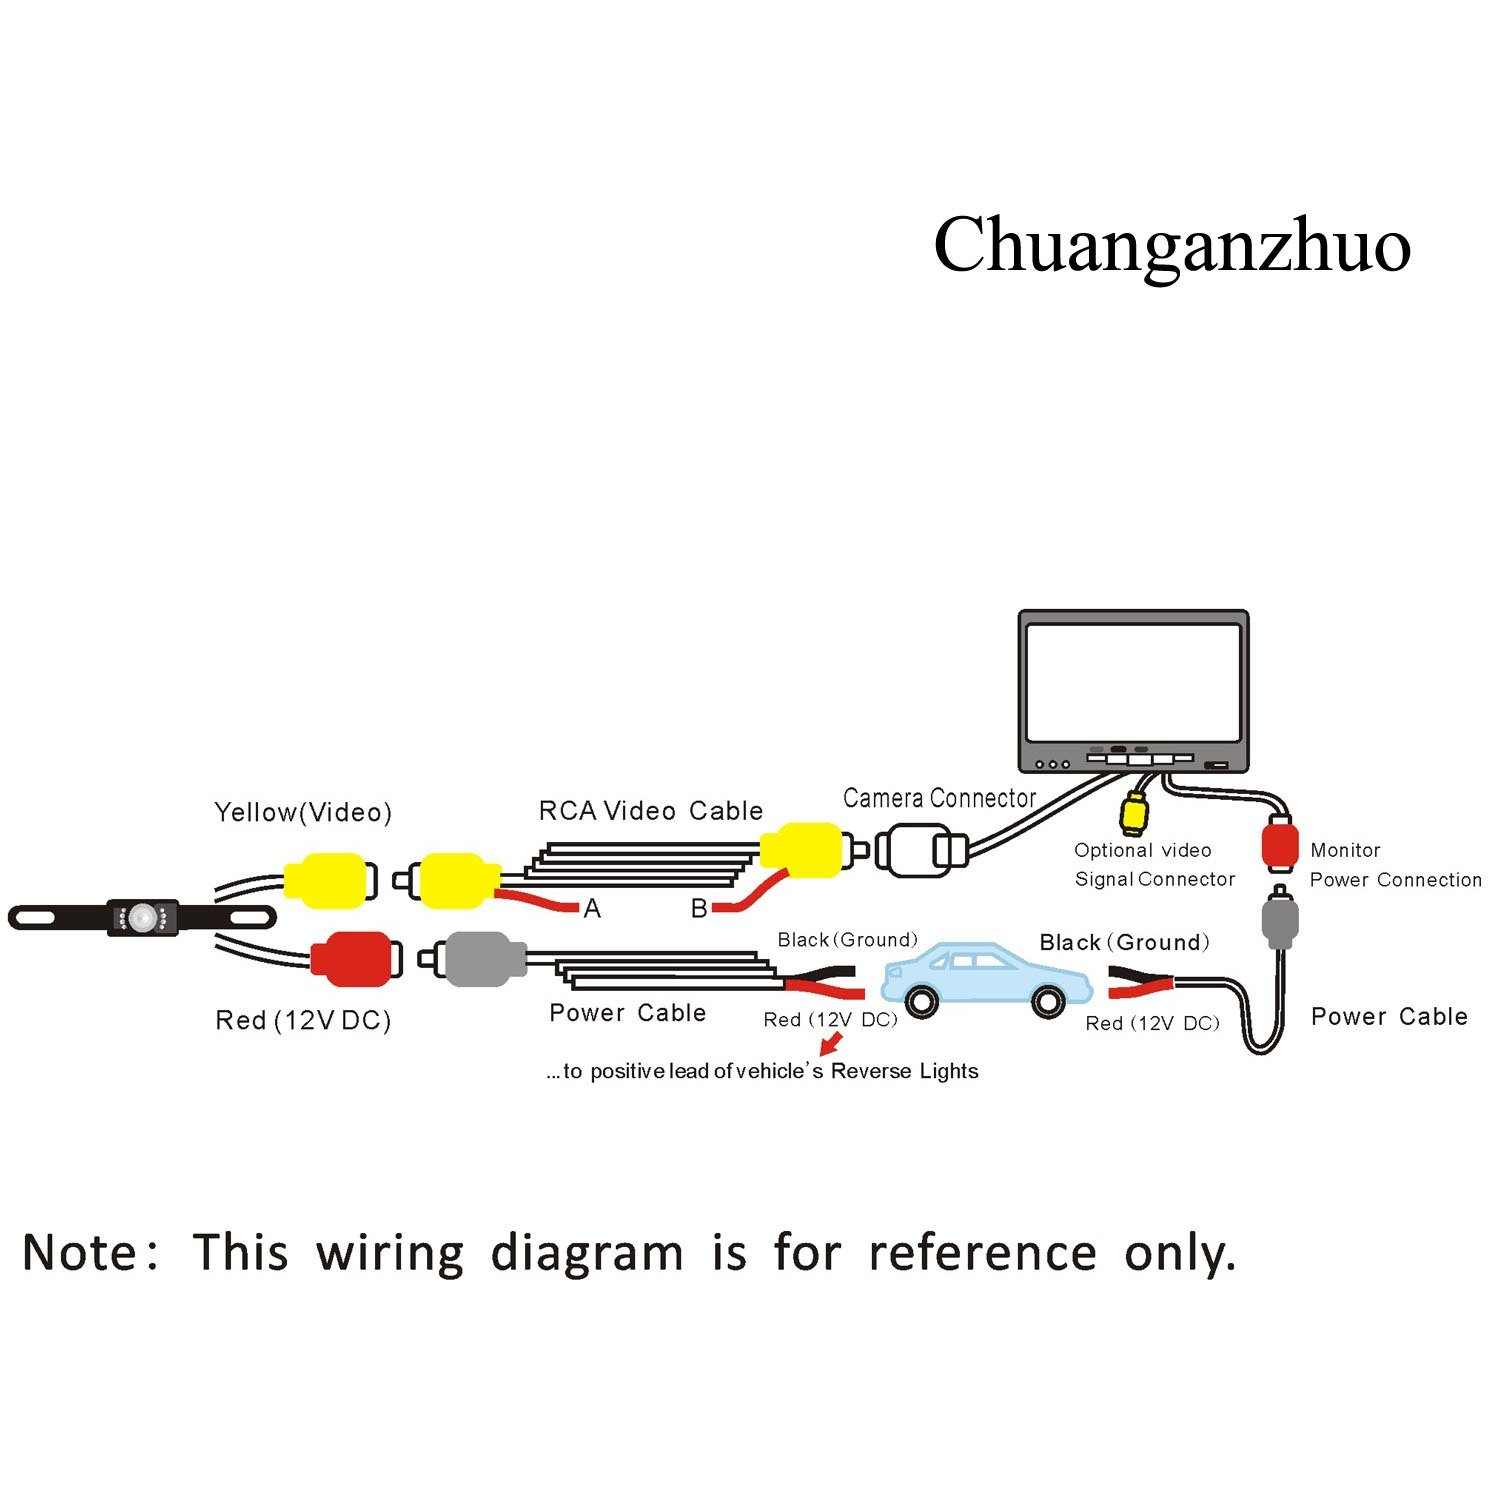 61eN9cMJzuL._SL1500_ amazon com backup camera and monitor kit, chuanganzhuo license cmos camera wiring diagram at pacquiaovsvargaslive.co